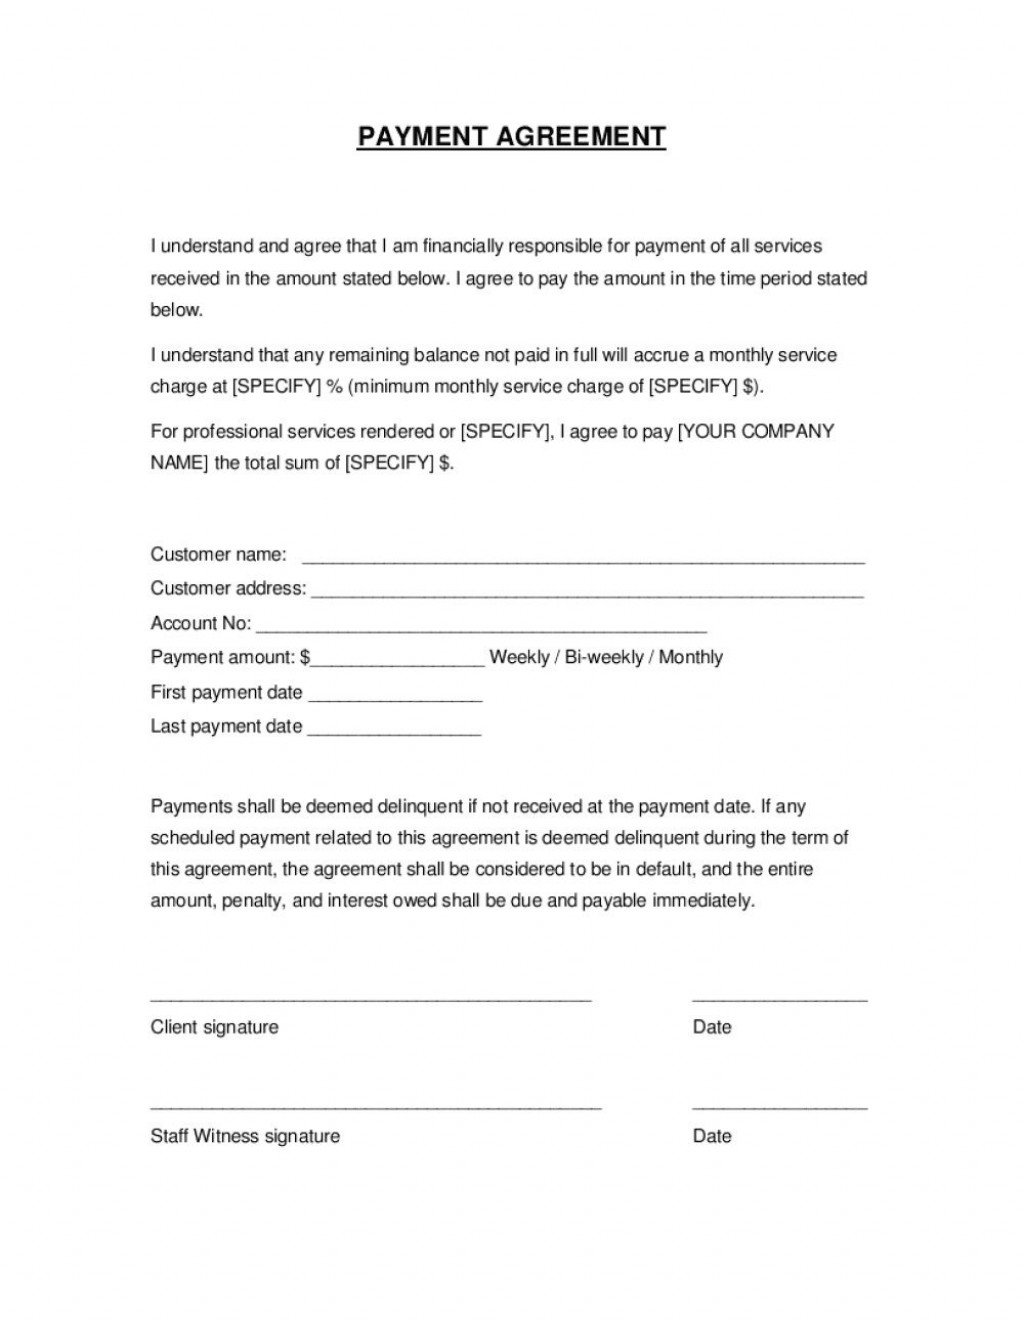 003 Wonderful Installment Payment Contract Template High Definition  Agreement Free Car WordLarge